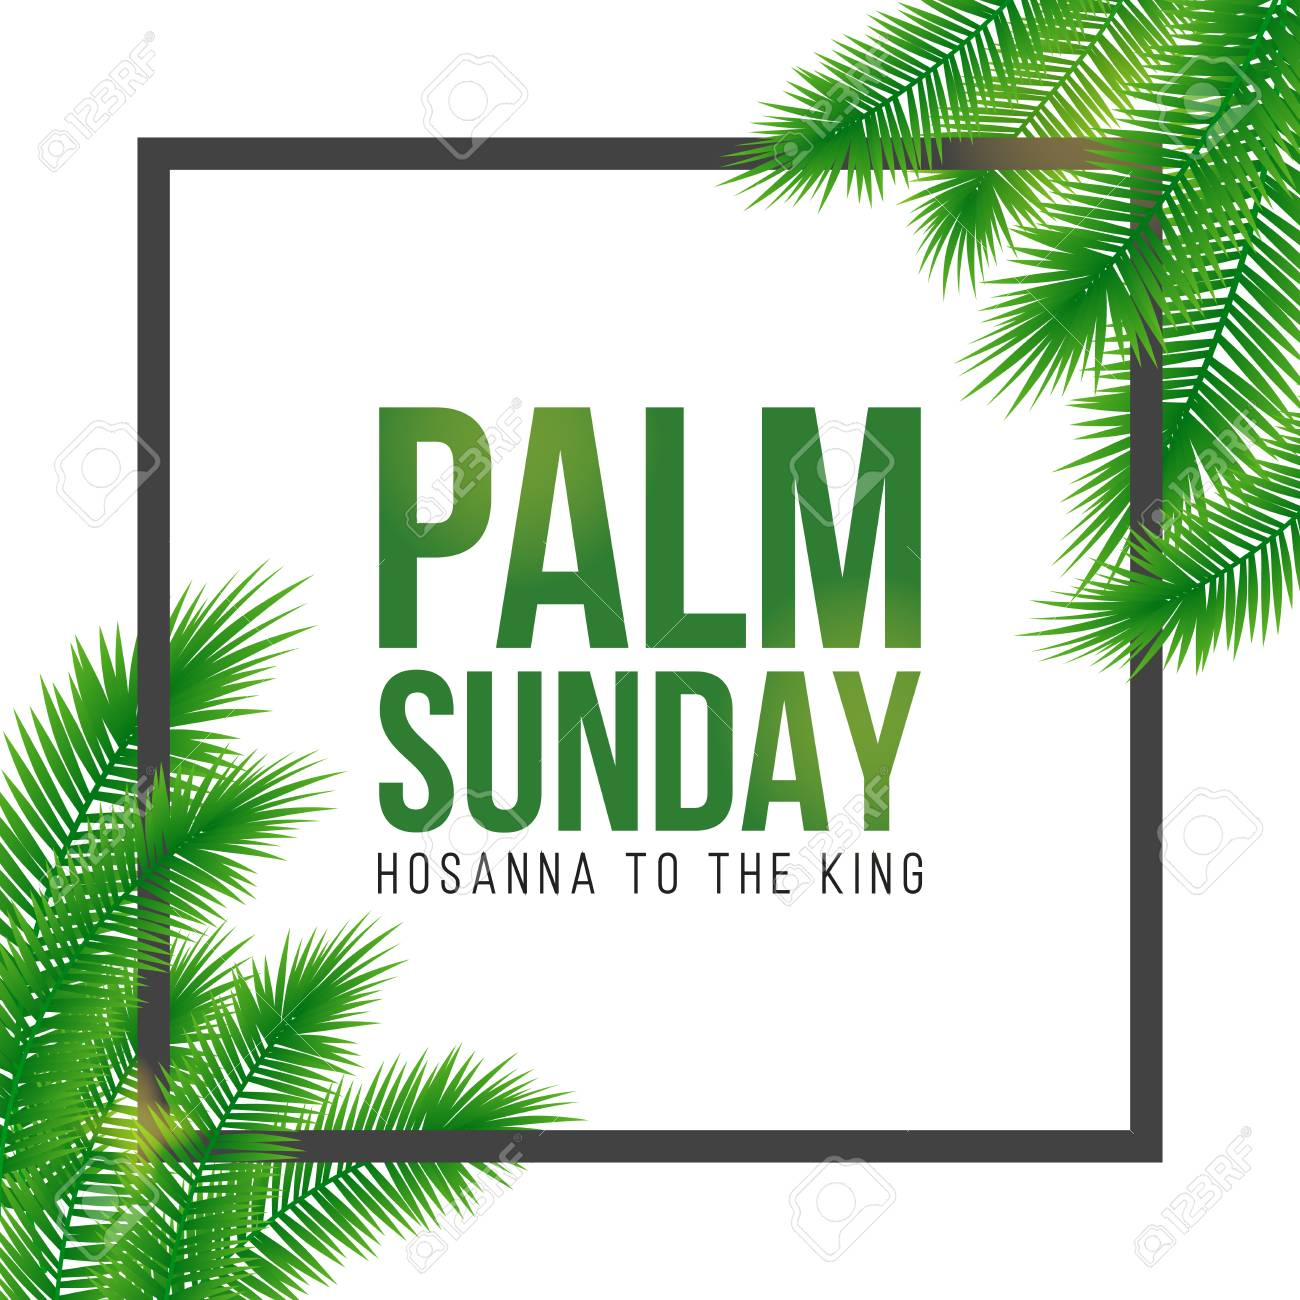 Palm Sunday holiday card, poster with realistick palm leaves border, frame. Vector background. - 94102347